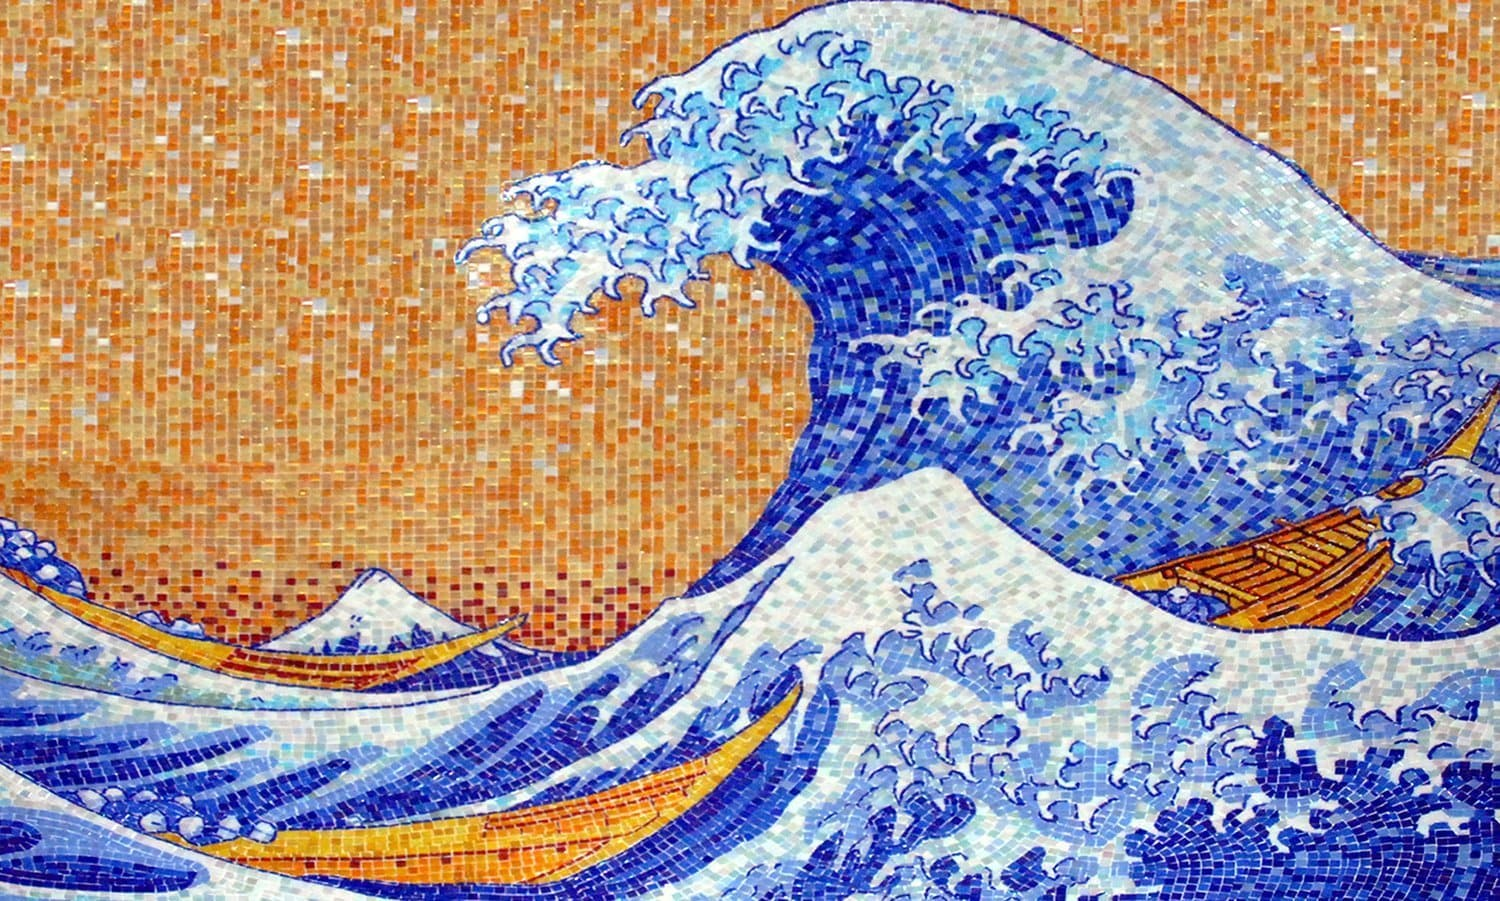 Splashing Waves Mosaic Art Pic